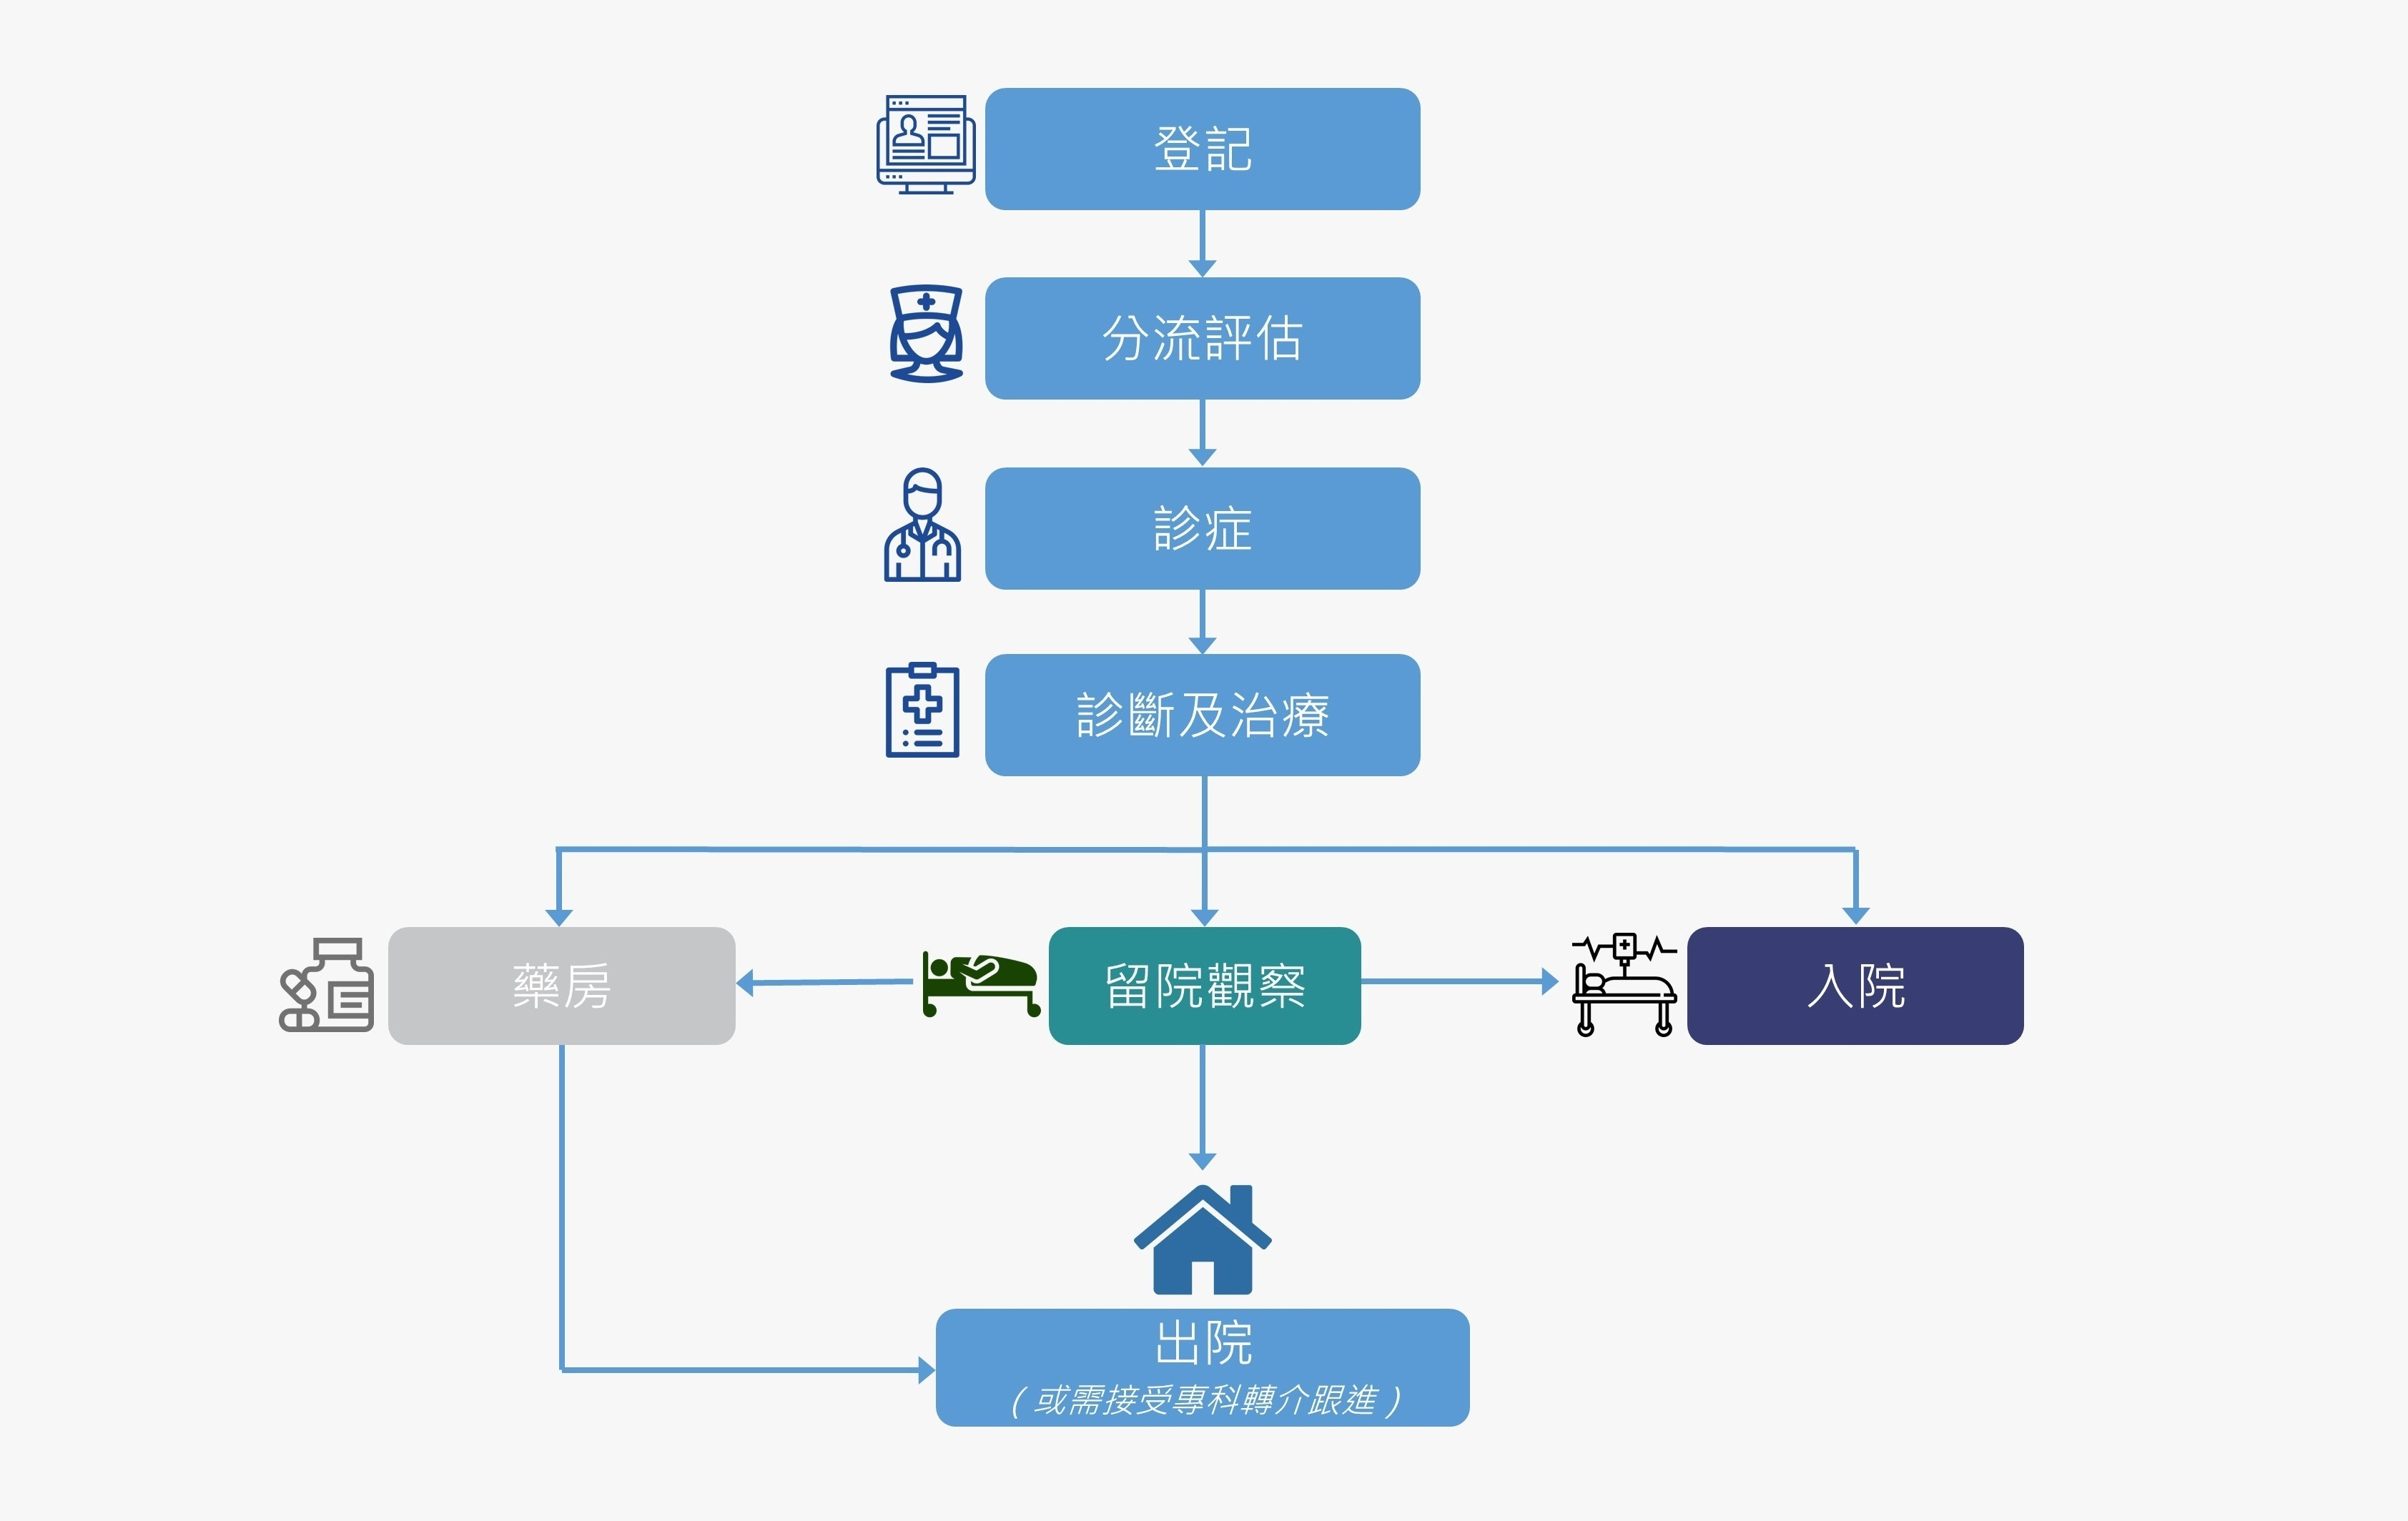 patient-flow_chinese_with-icons-cropped2.jpg#asset:58420